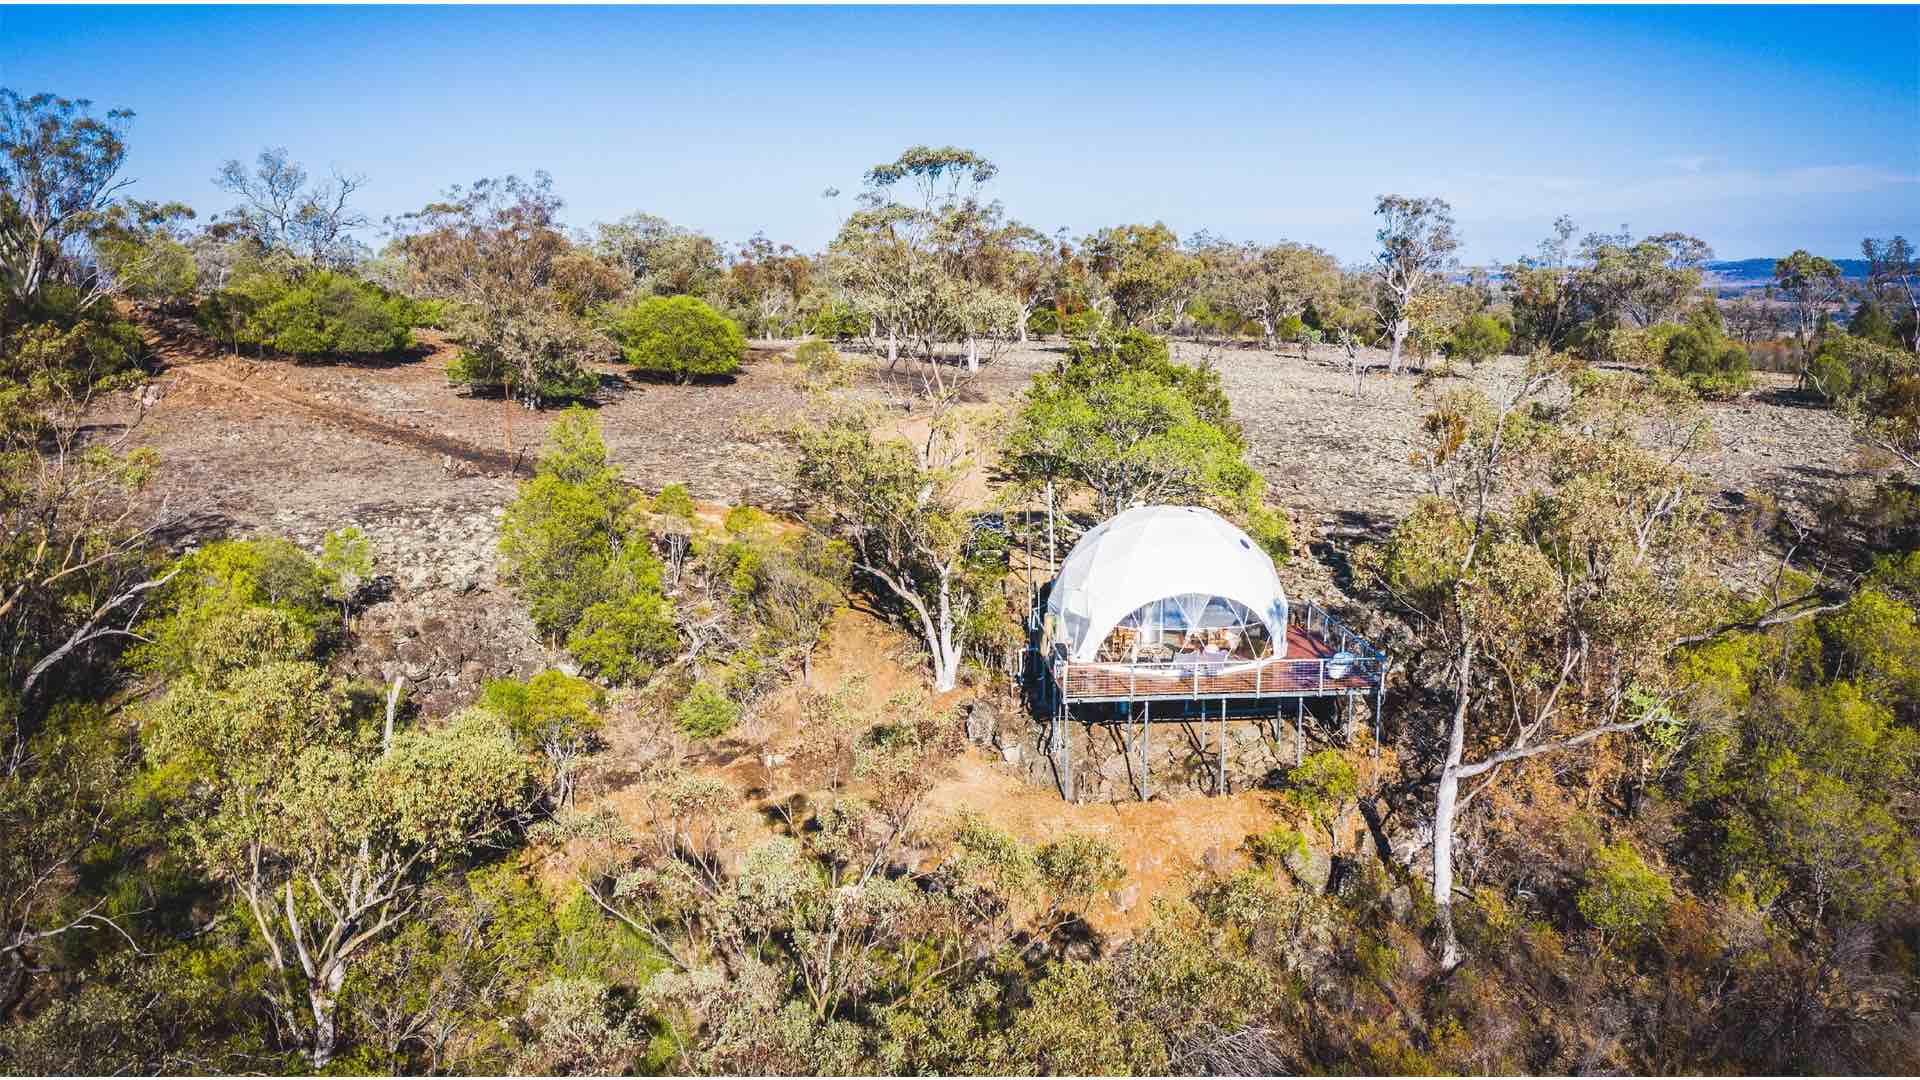 You Can Now Escape to a Luxury Dome Tent in the Middle of the NSW Bush